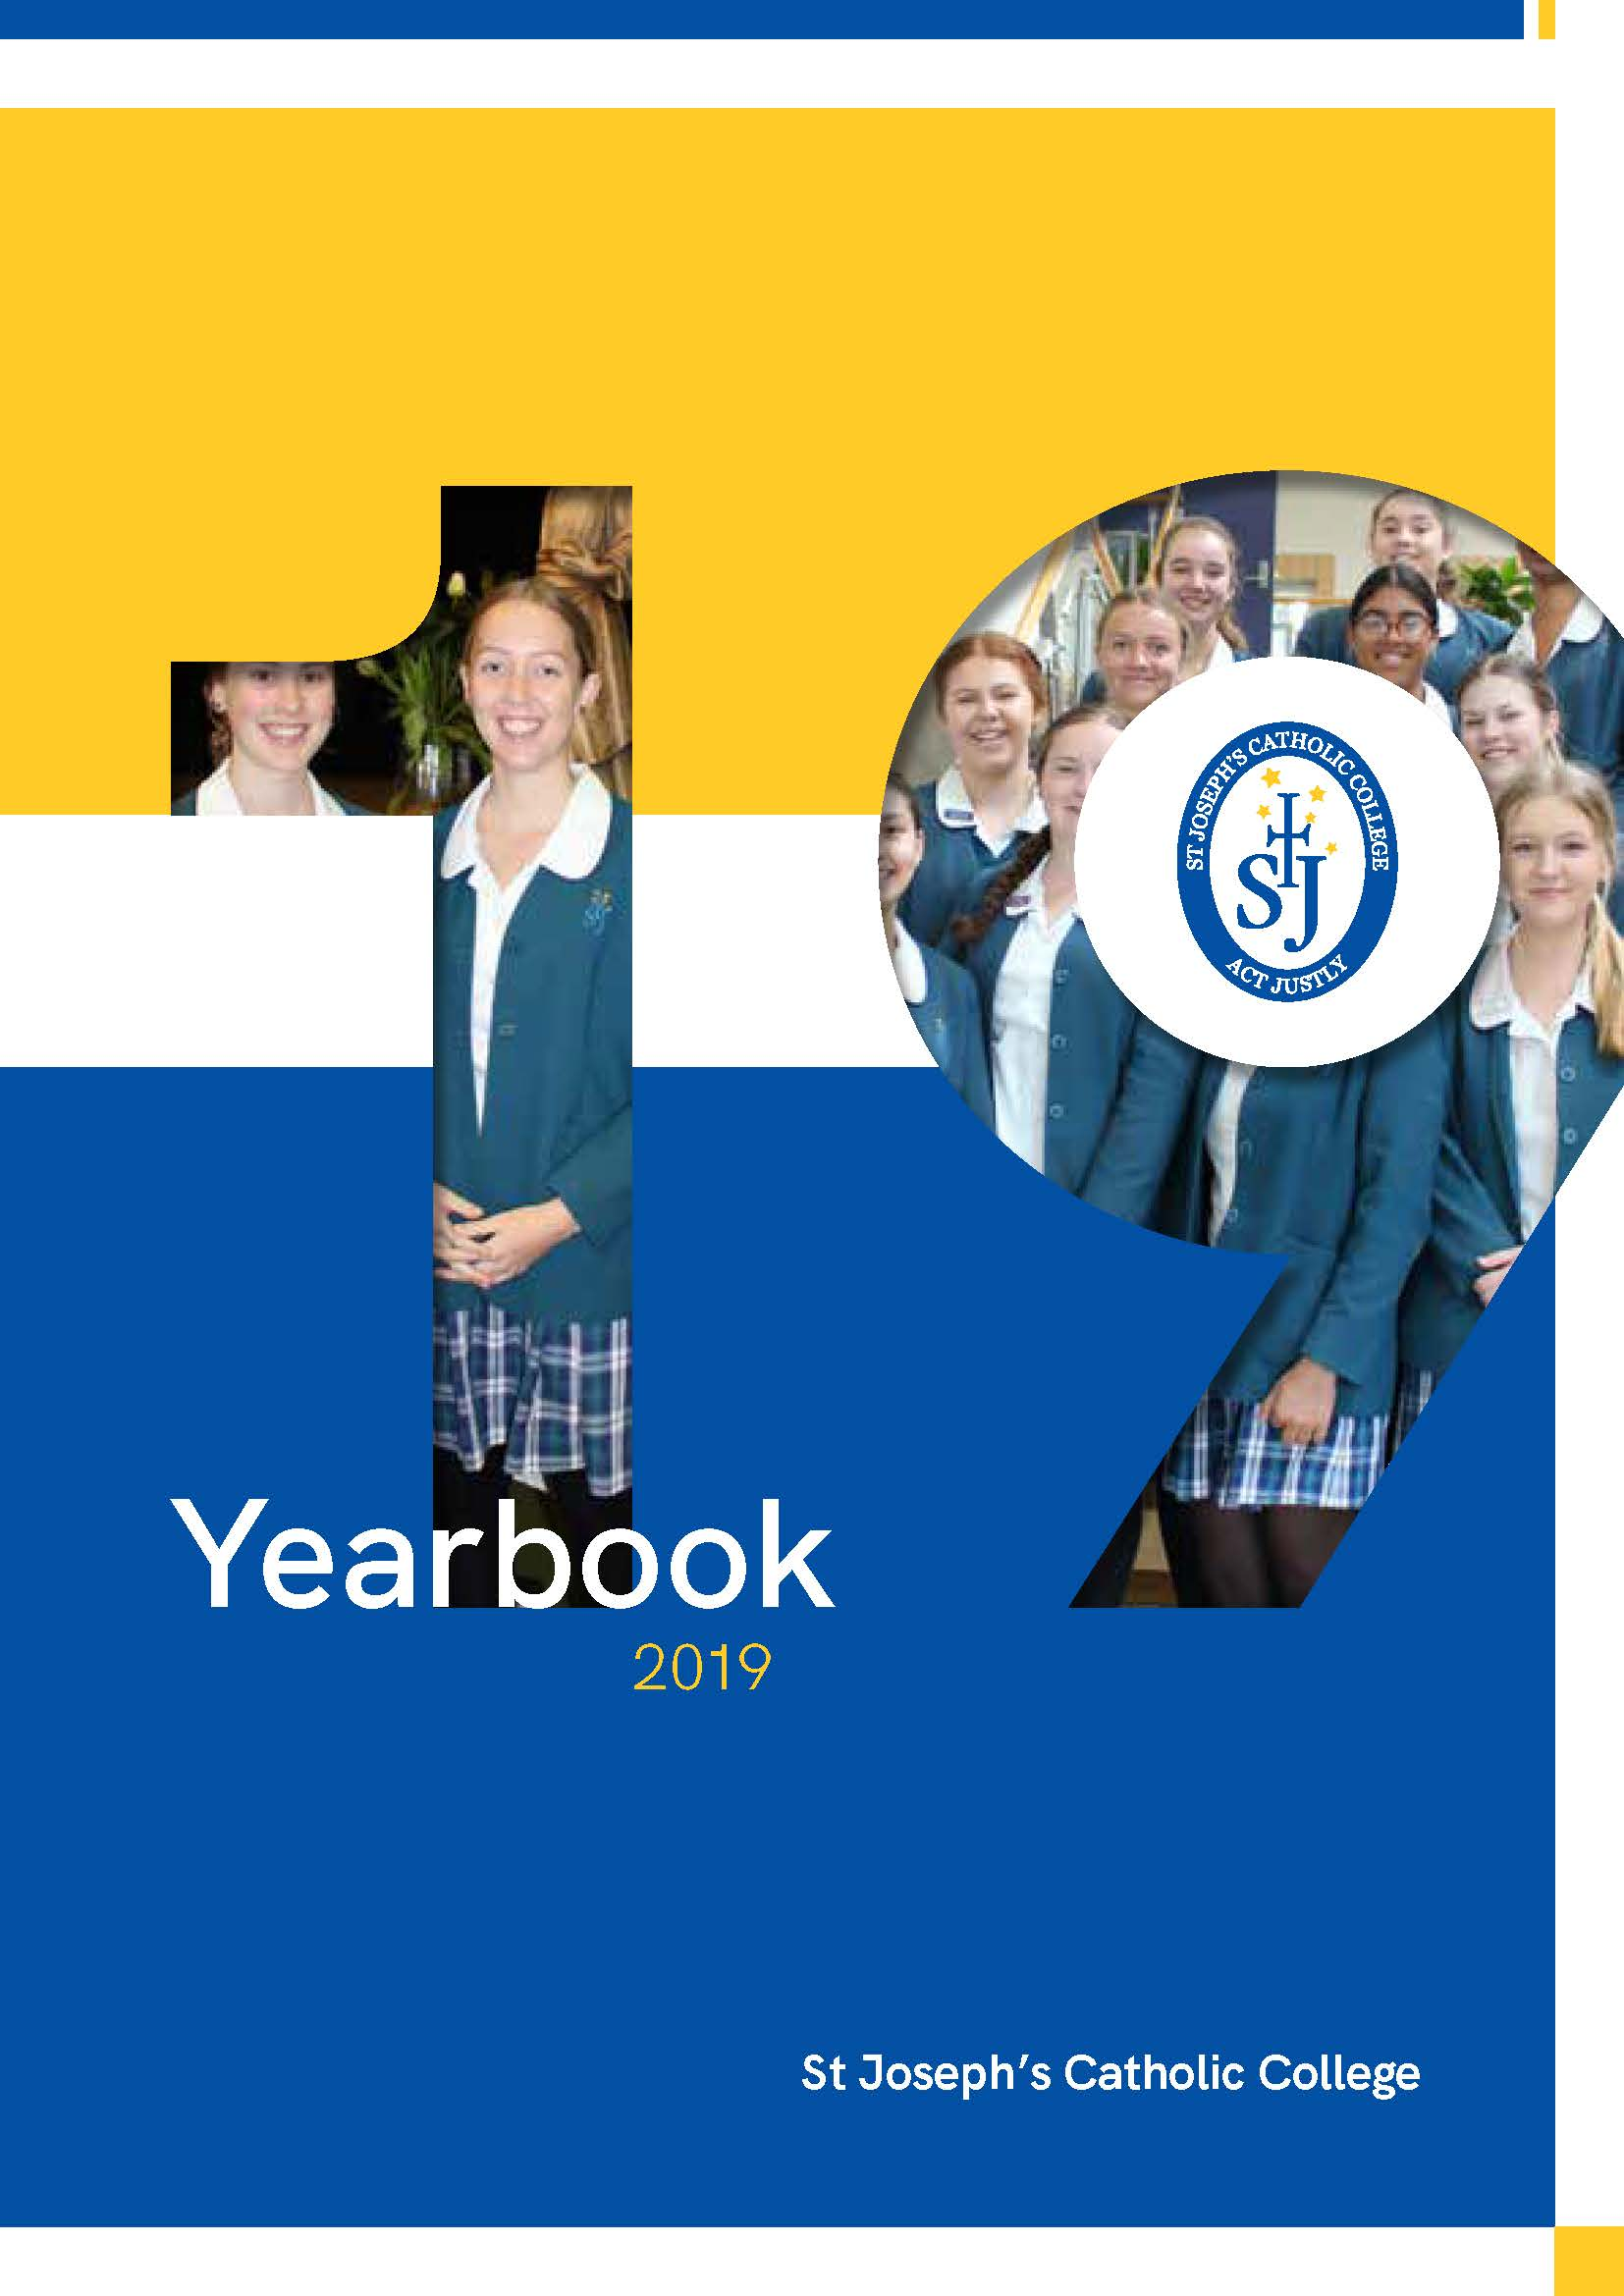 St Joseph's Catholic College 2019 Yearbook